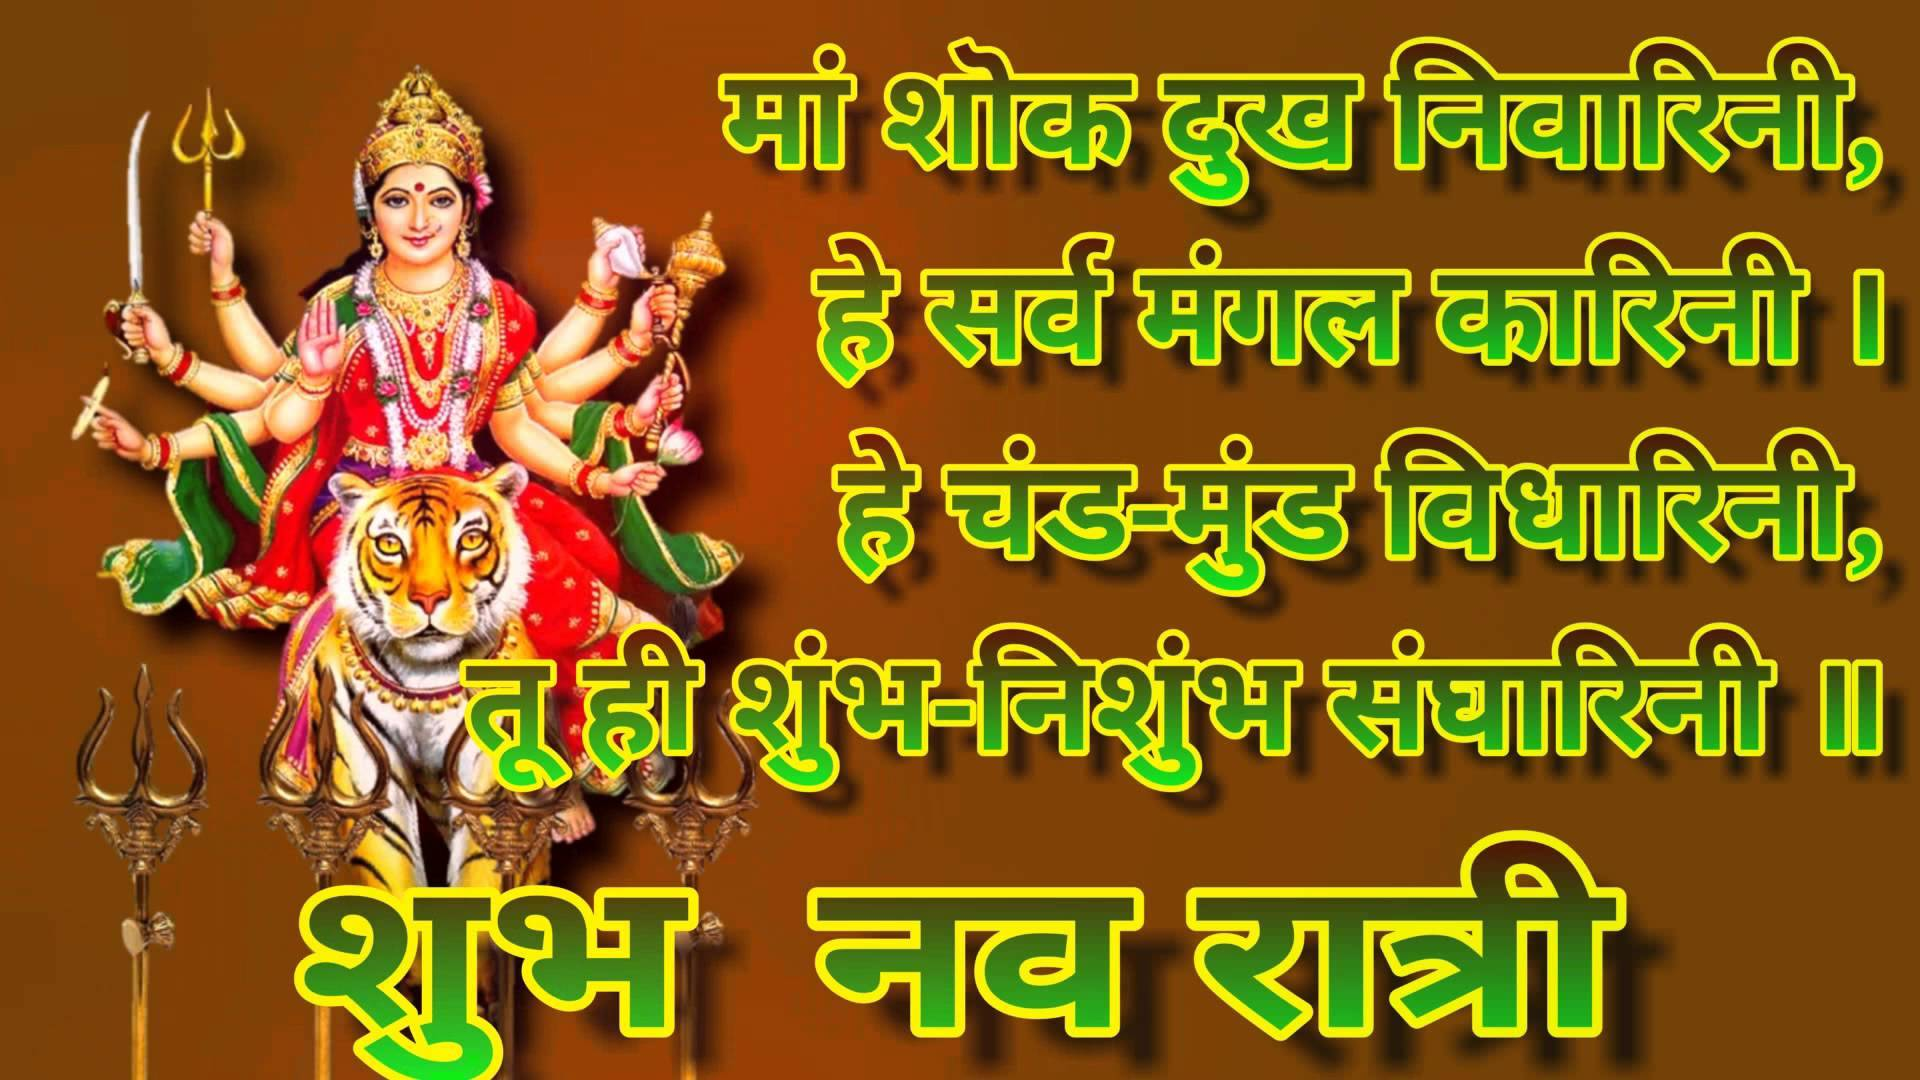 Happy shubh sharad navratri 2017 quotes wishes sms messages whatsapp m4hsunfo